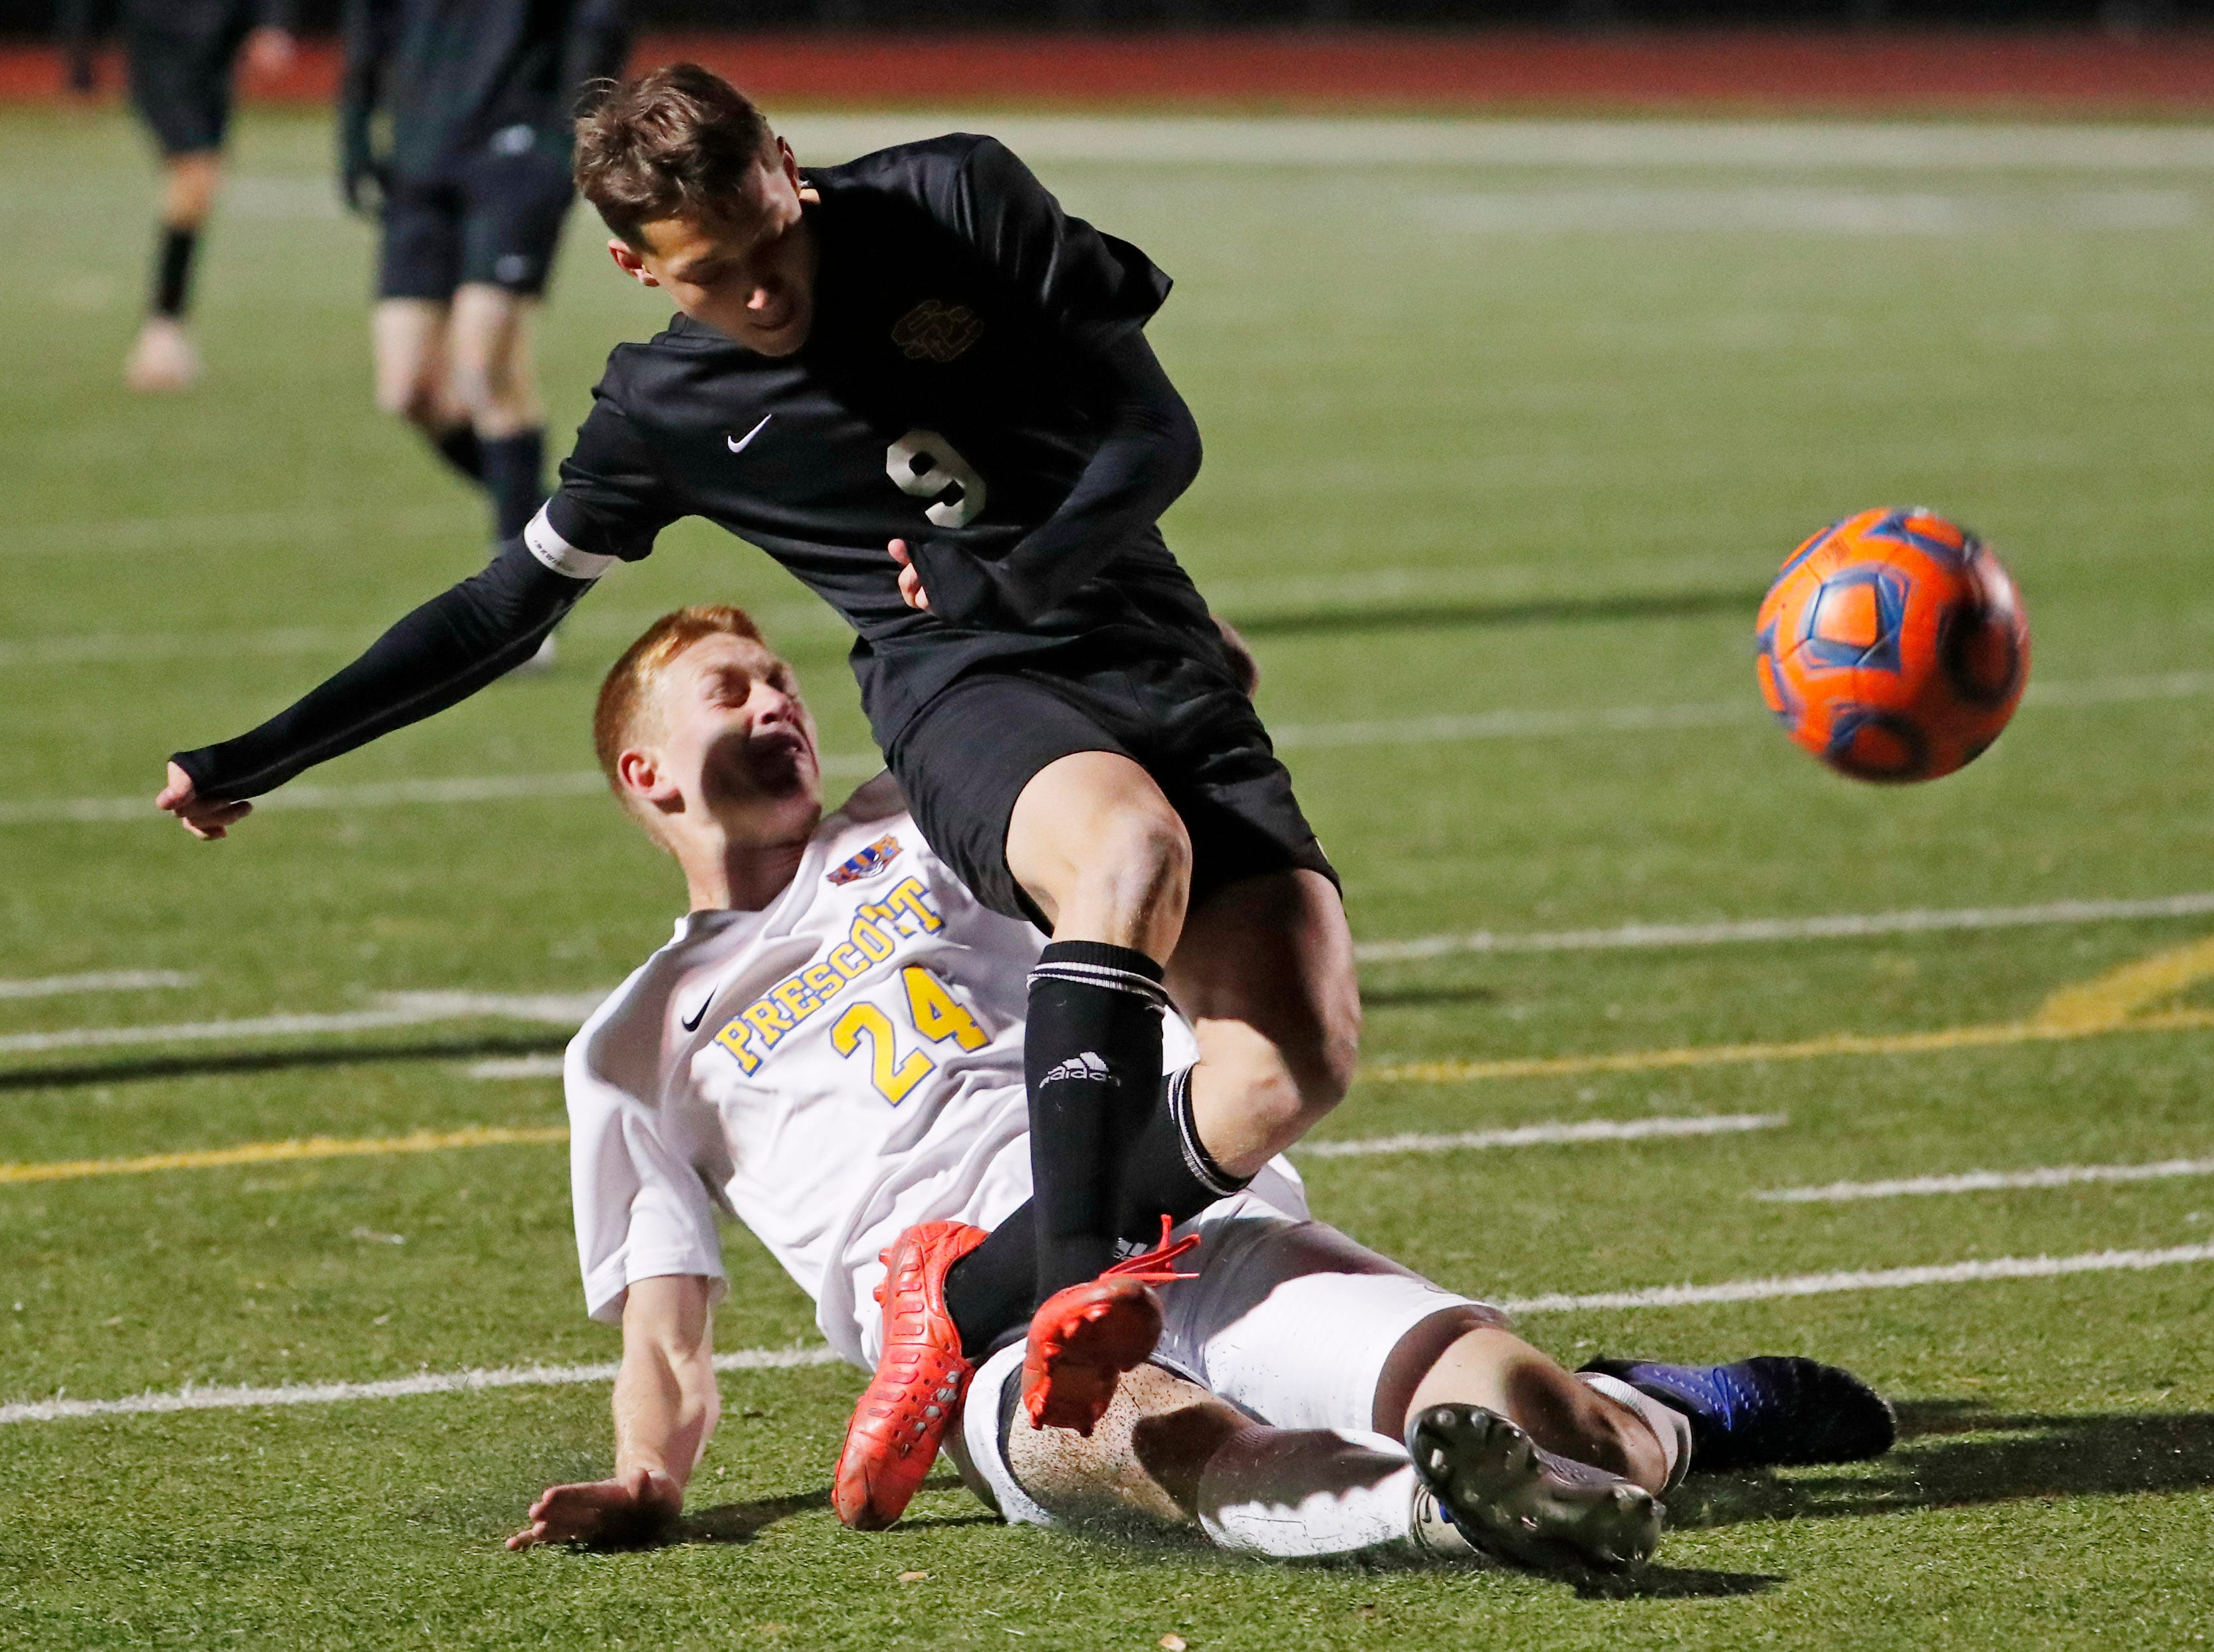 Salpointe's Francisco Manzo (9) is tackled by Prescott's Trevor Cargill (24) during the Boys 4A State Championship soccer game in Gilbert Feb. 19, 2019.